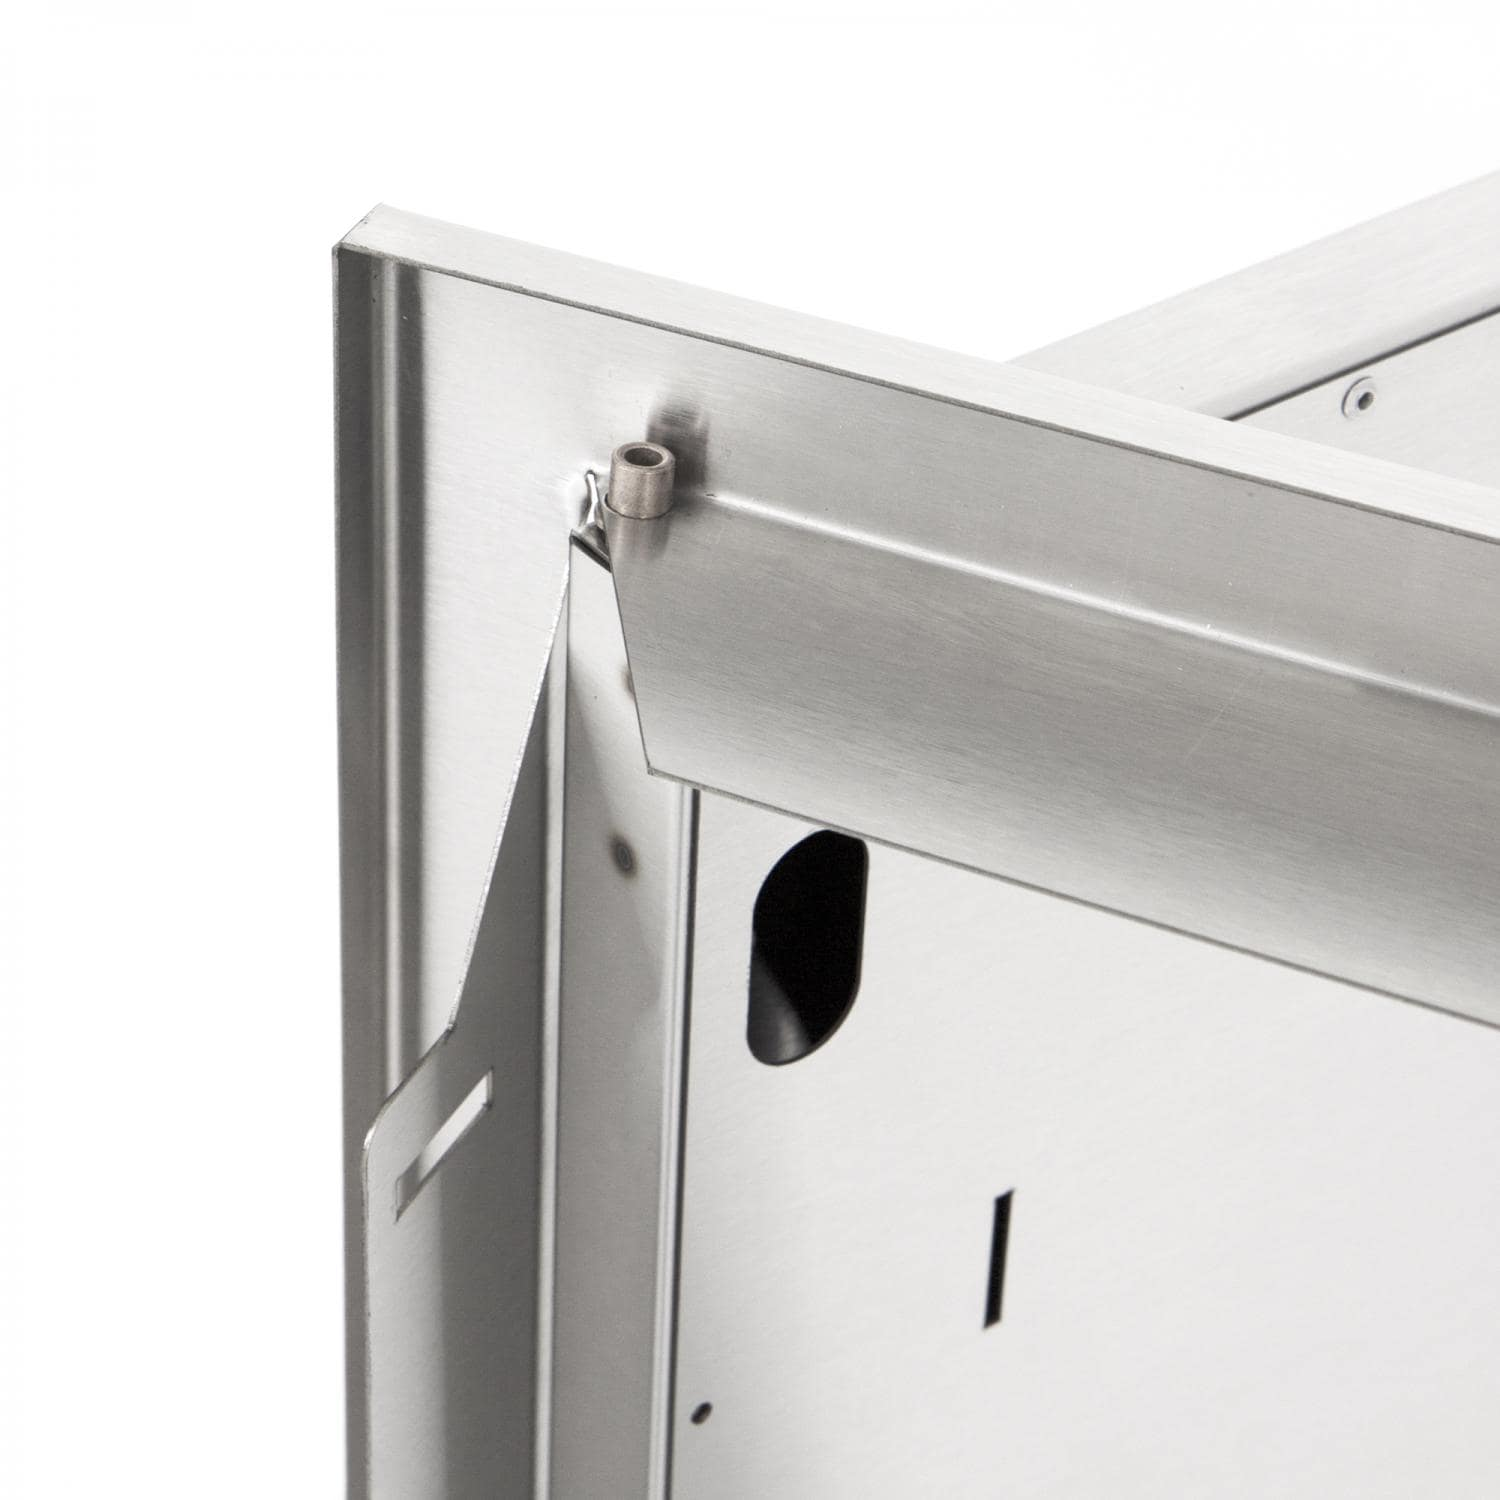 Sonoma series 36 inch stainless steel double for Door 9 sonoma